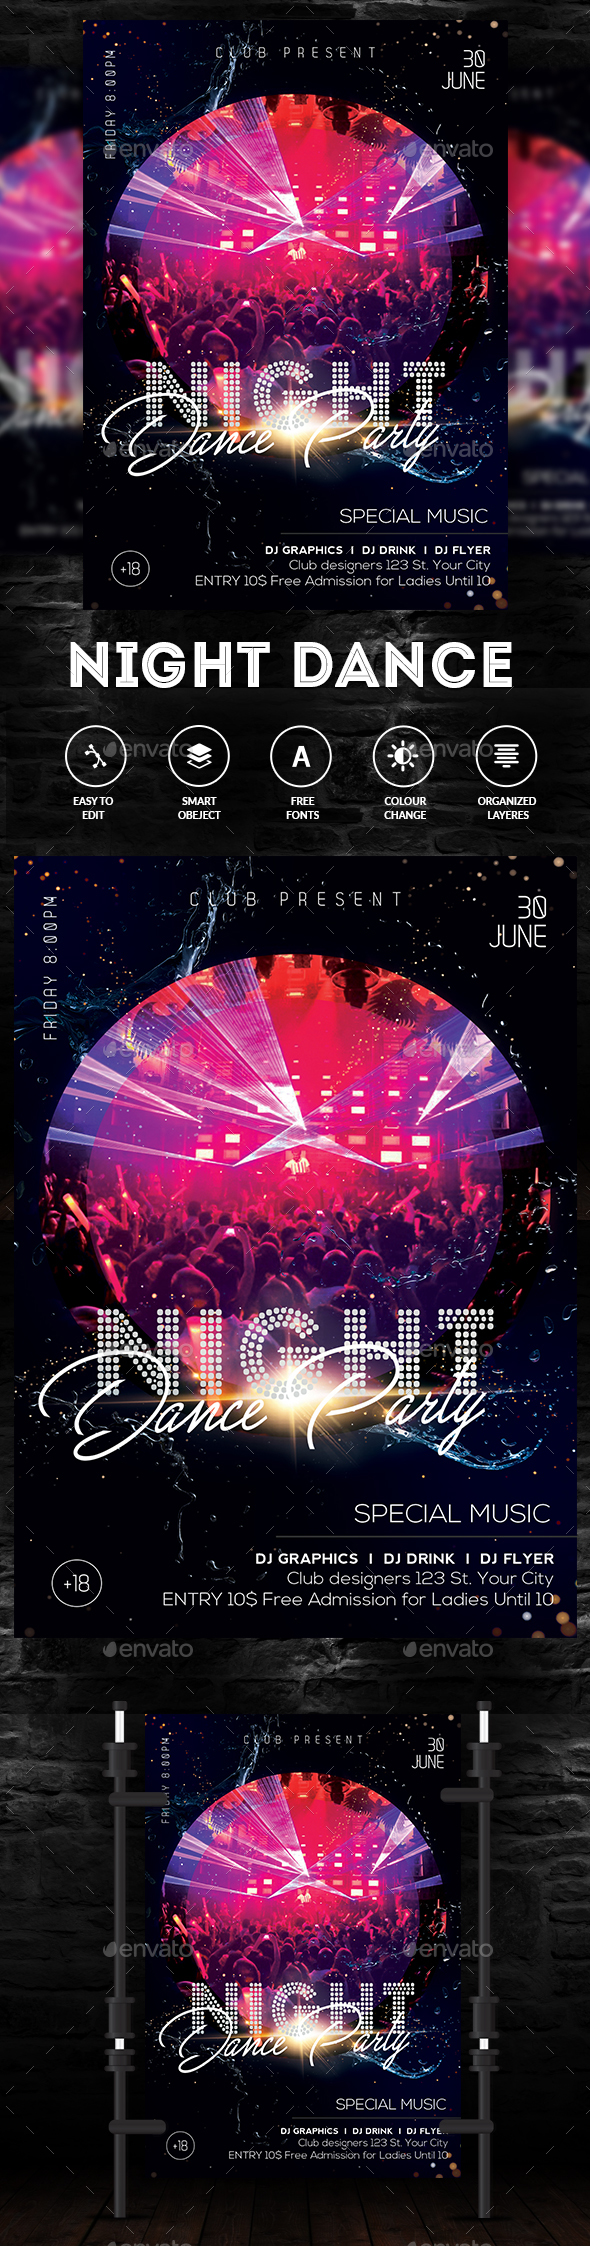 Party Nights Dance Flyer - Clubs & Parties Events